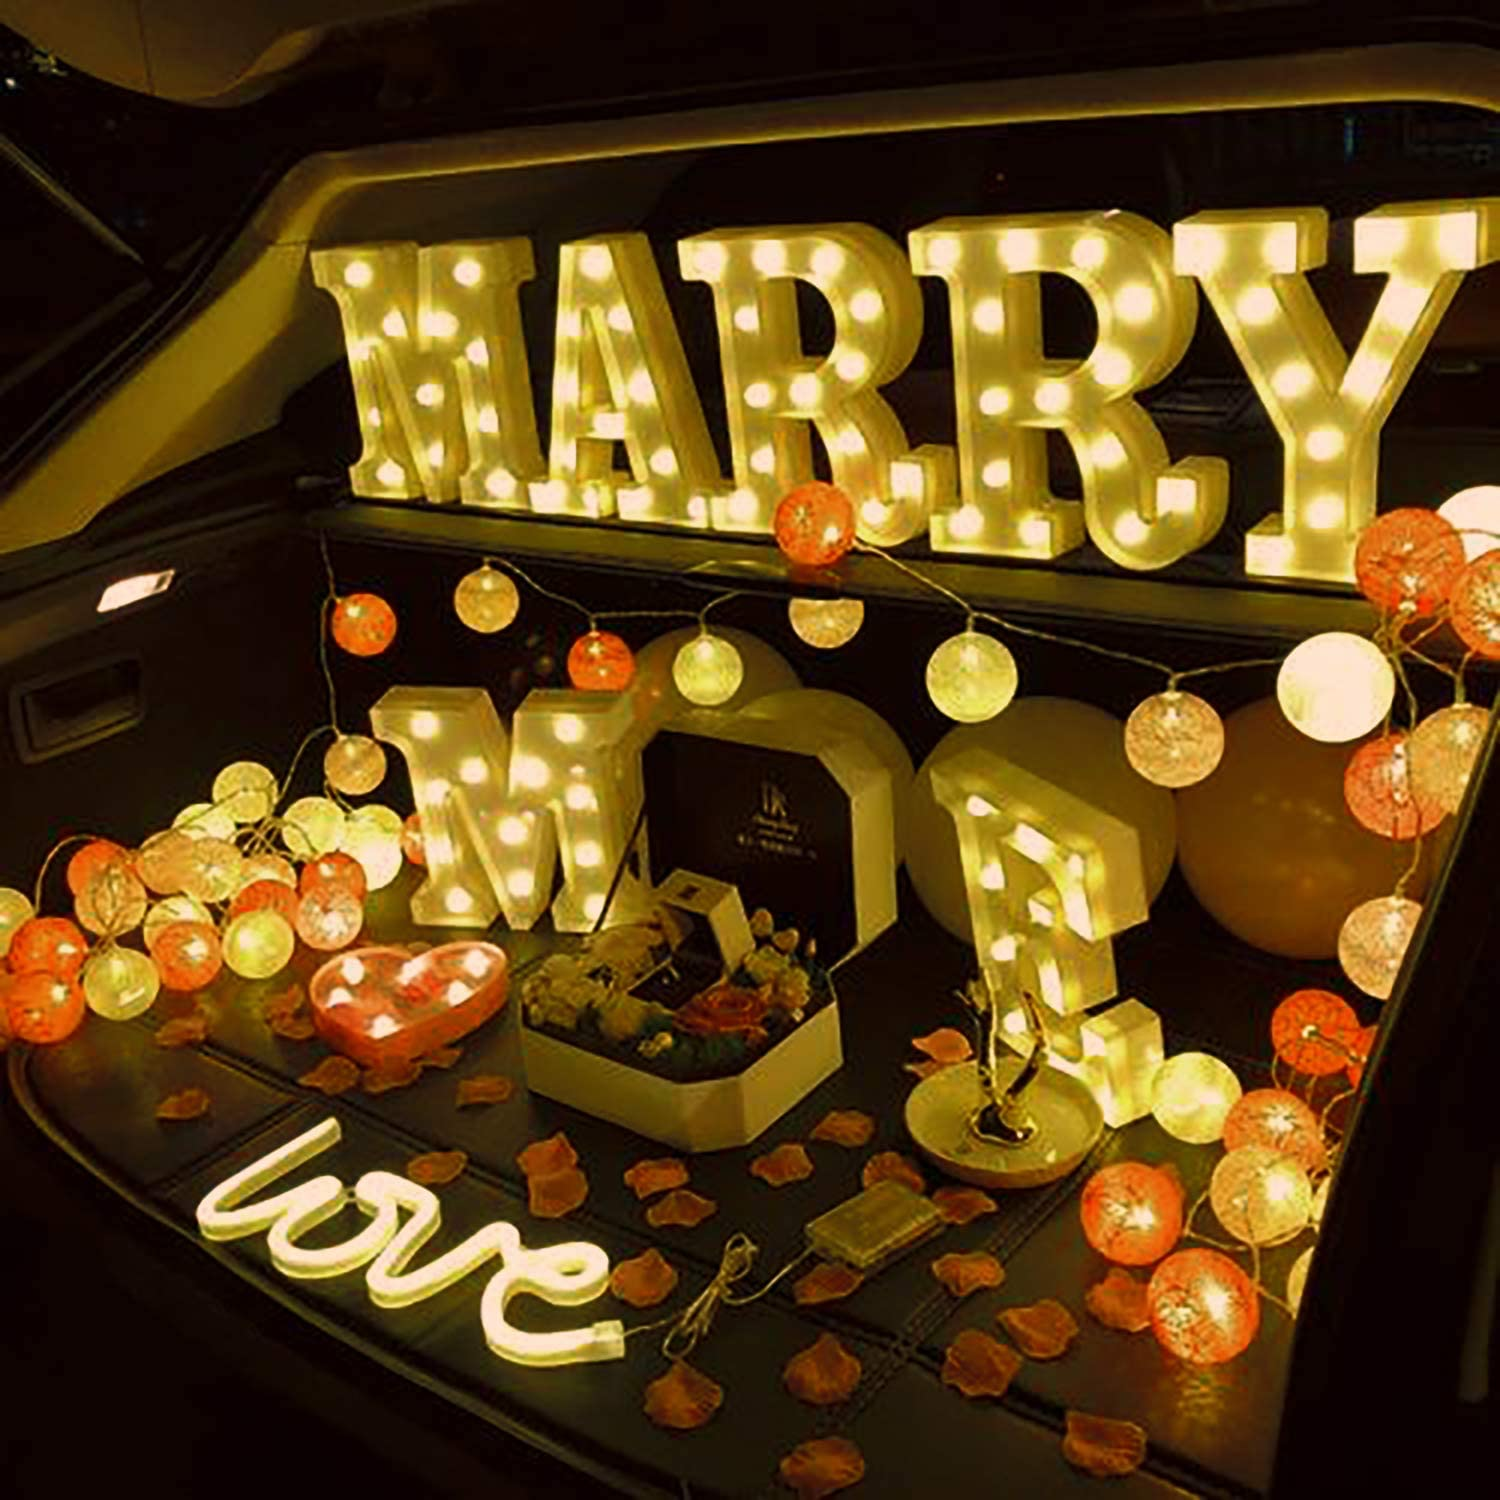 Battery Powered Letter H Warm White Marquee Letters Sign with Shining Bulbs Novelty Place Alphabet Light Standing Night Lamp for Wedding Home Party Bar D/écor